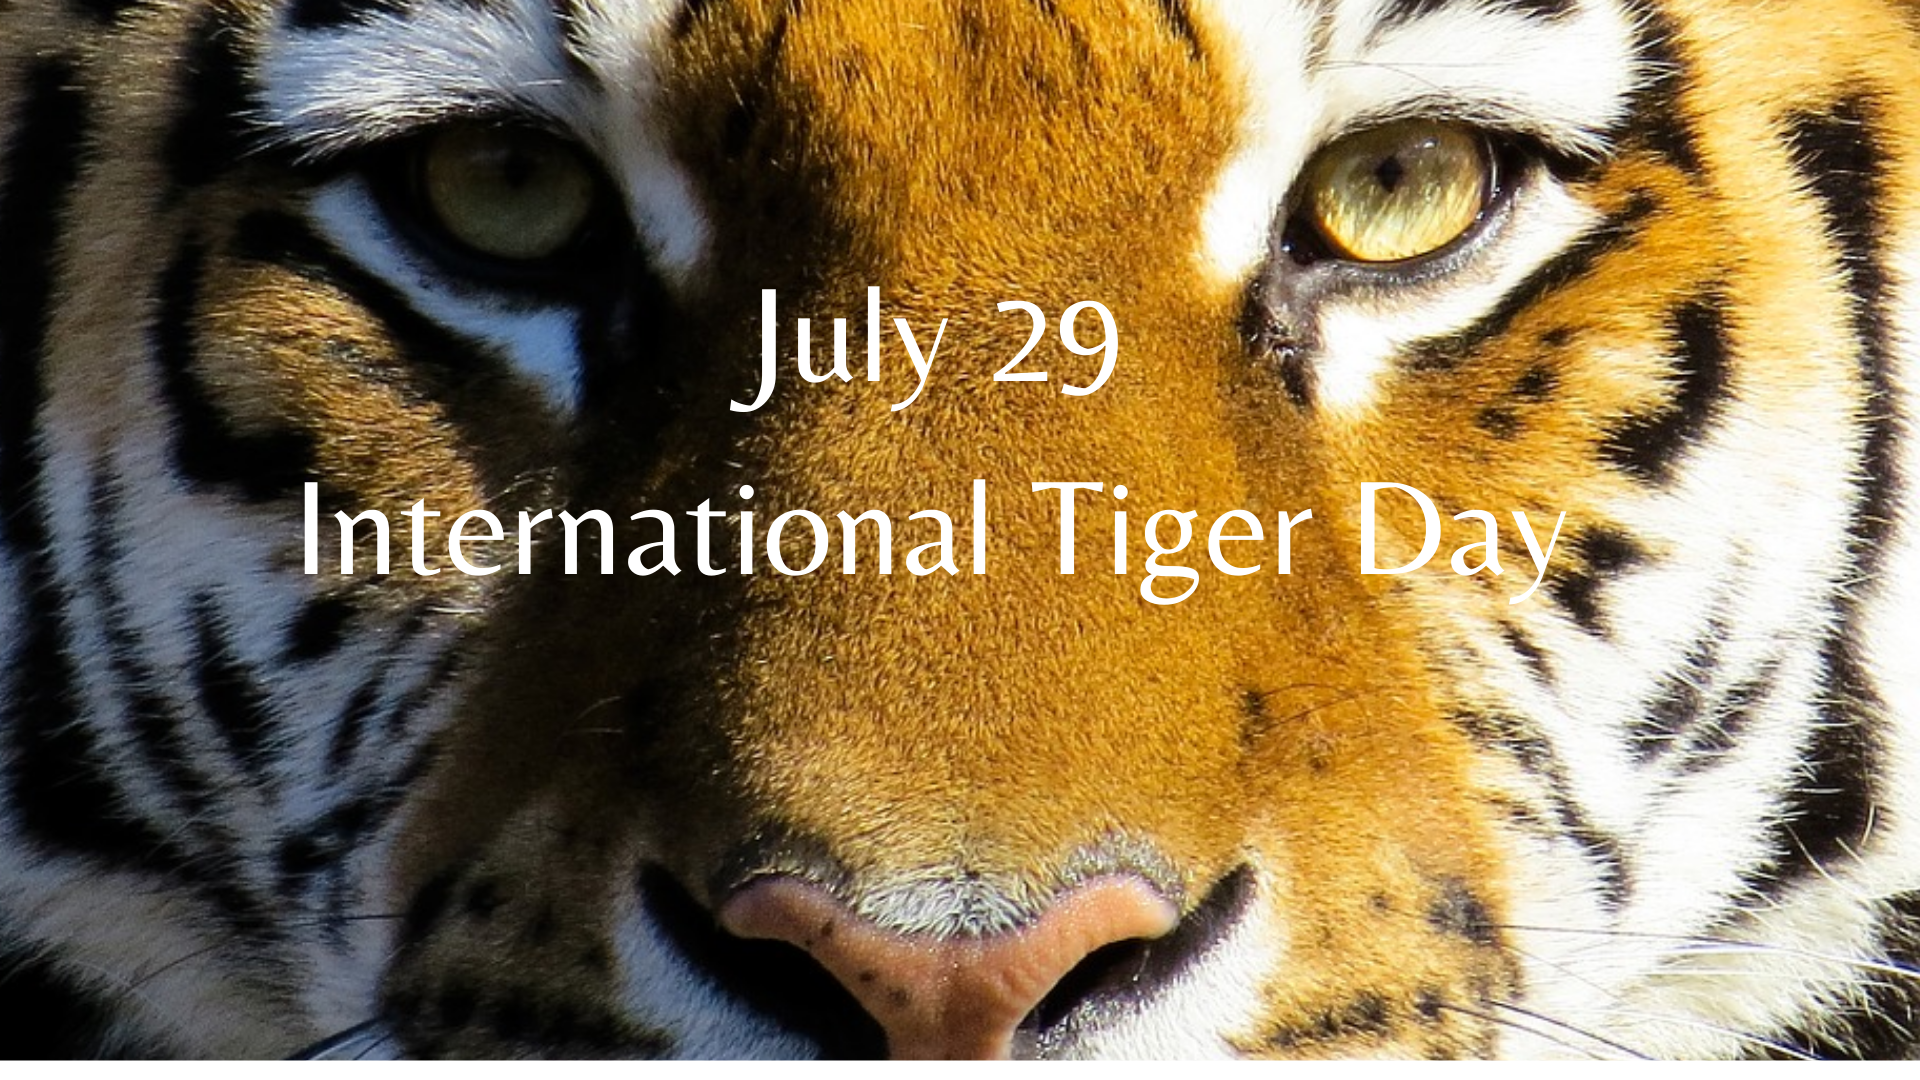 July 29 International Tiger Day  | Global Tiger Day